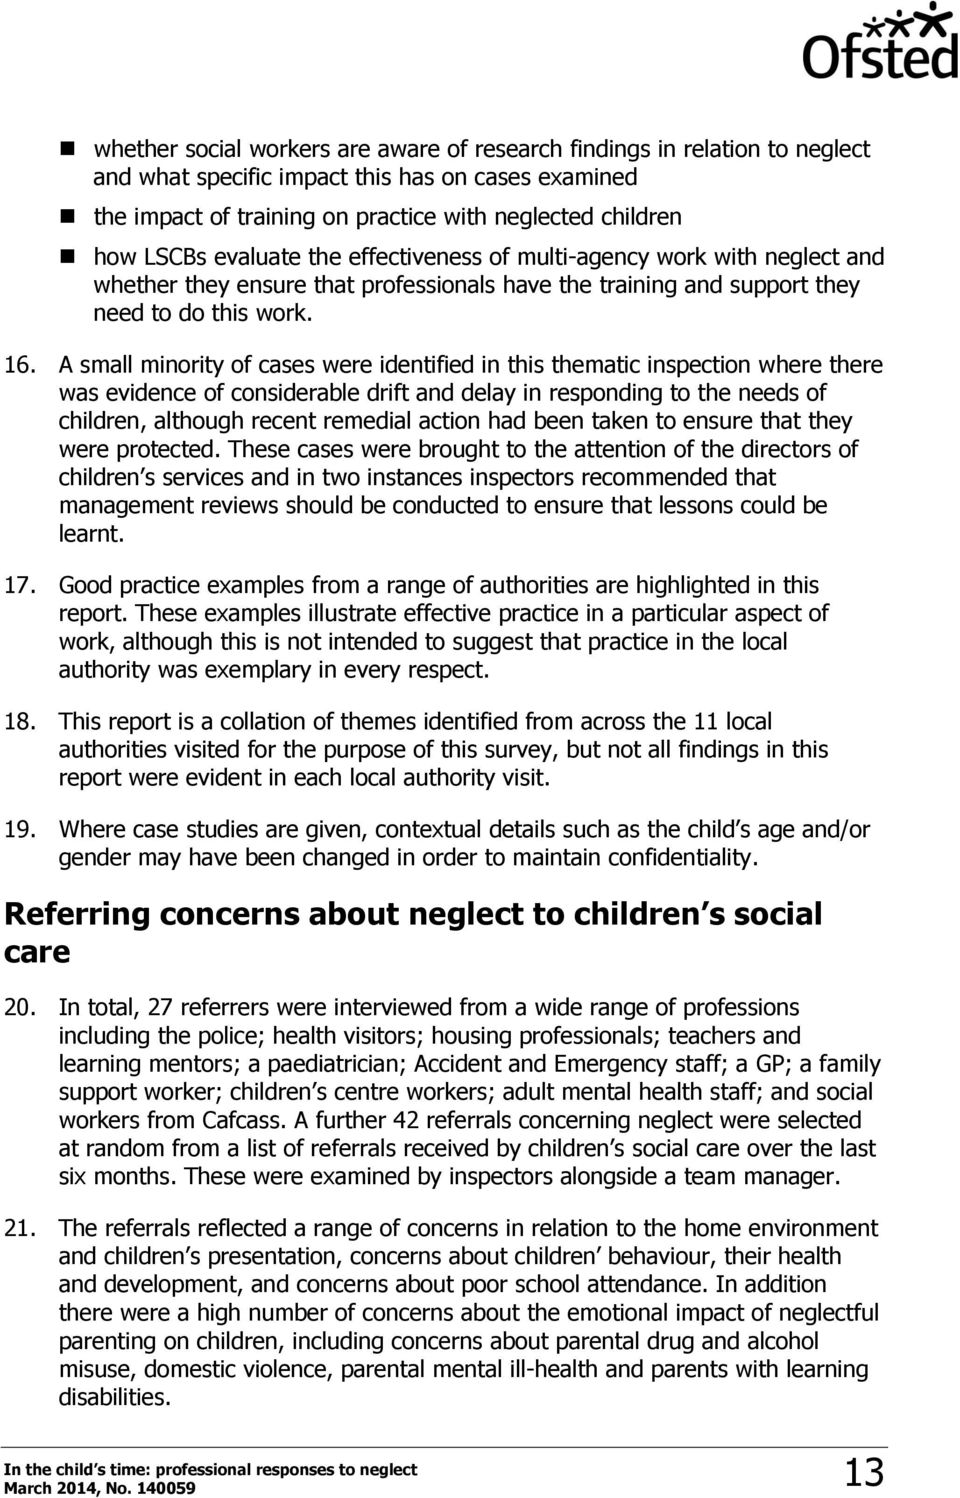 A small minority of cases were identified in this thematic inspection where there was evidence of considerable drift and delay in responding to the needs of children, although recent remedial action